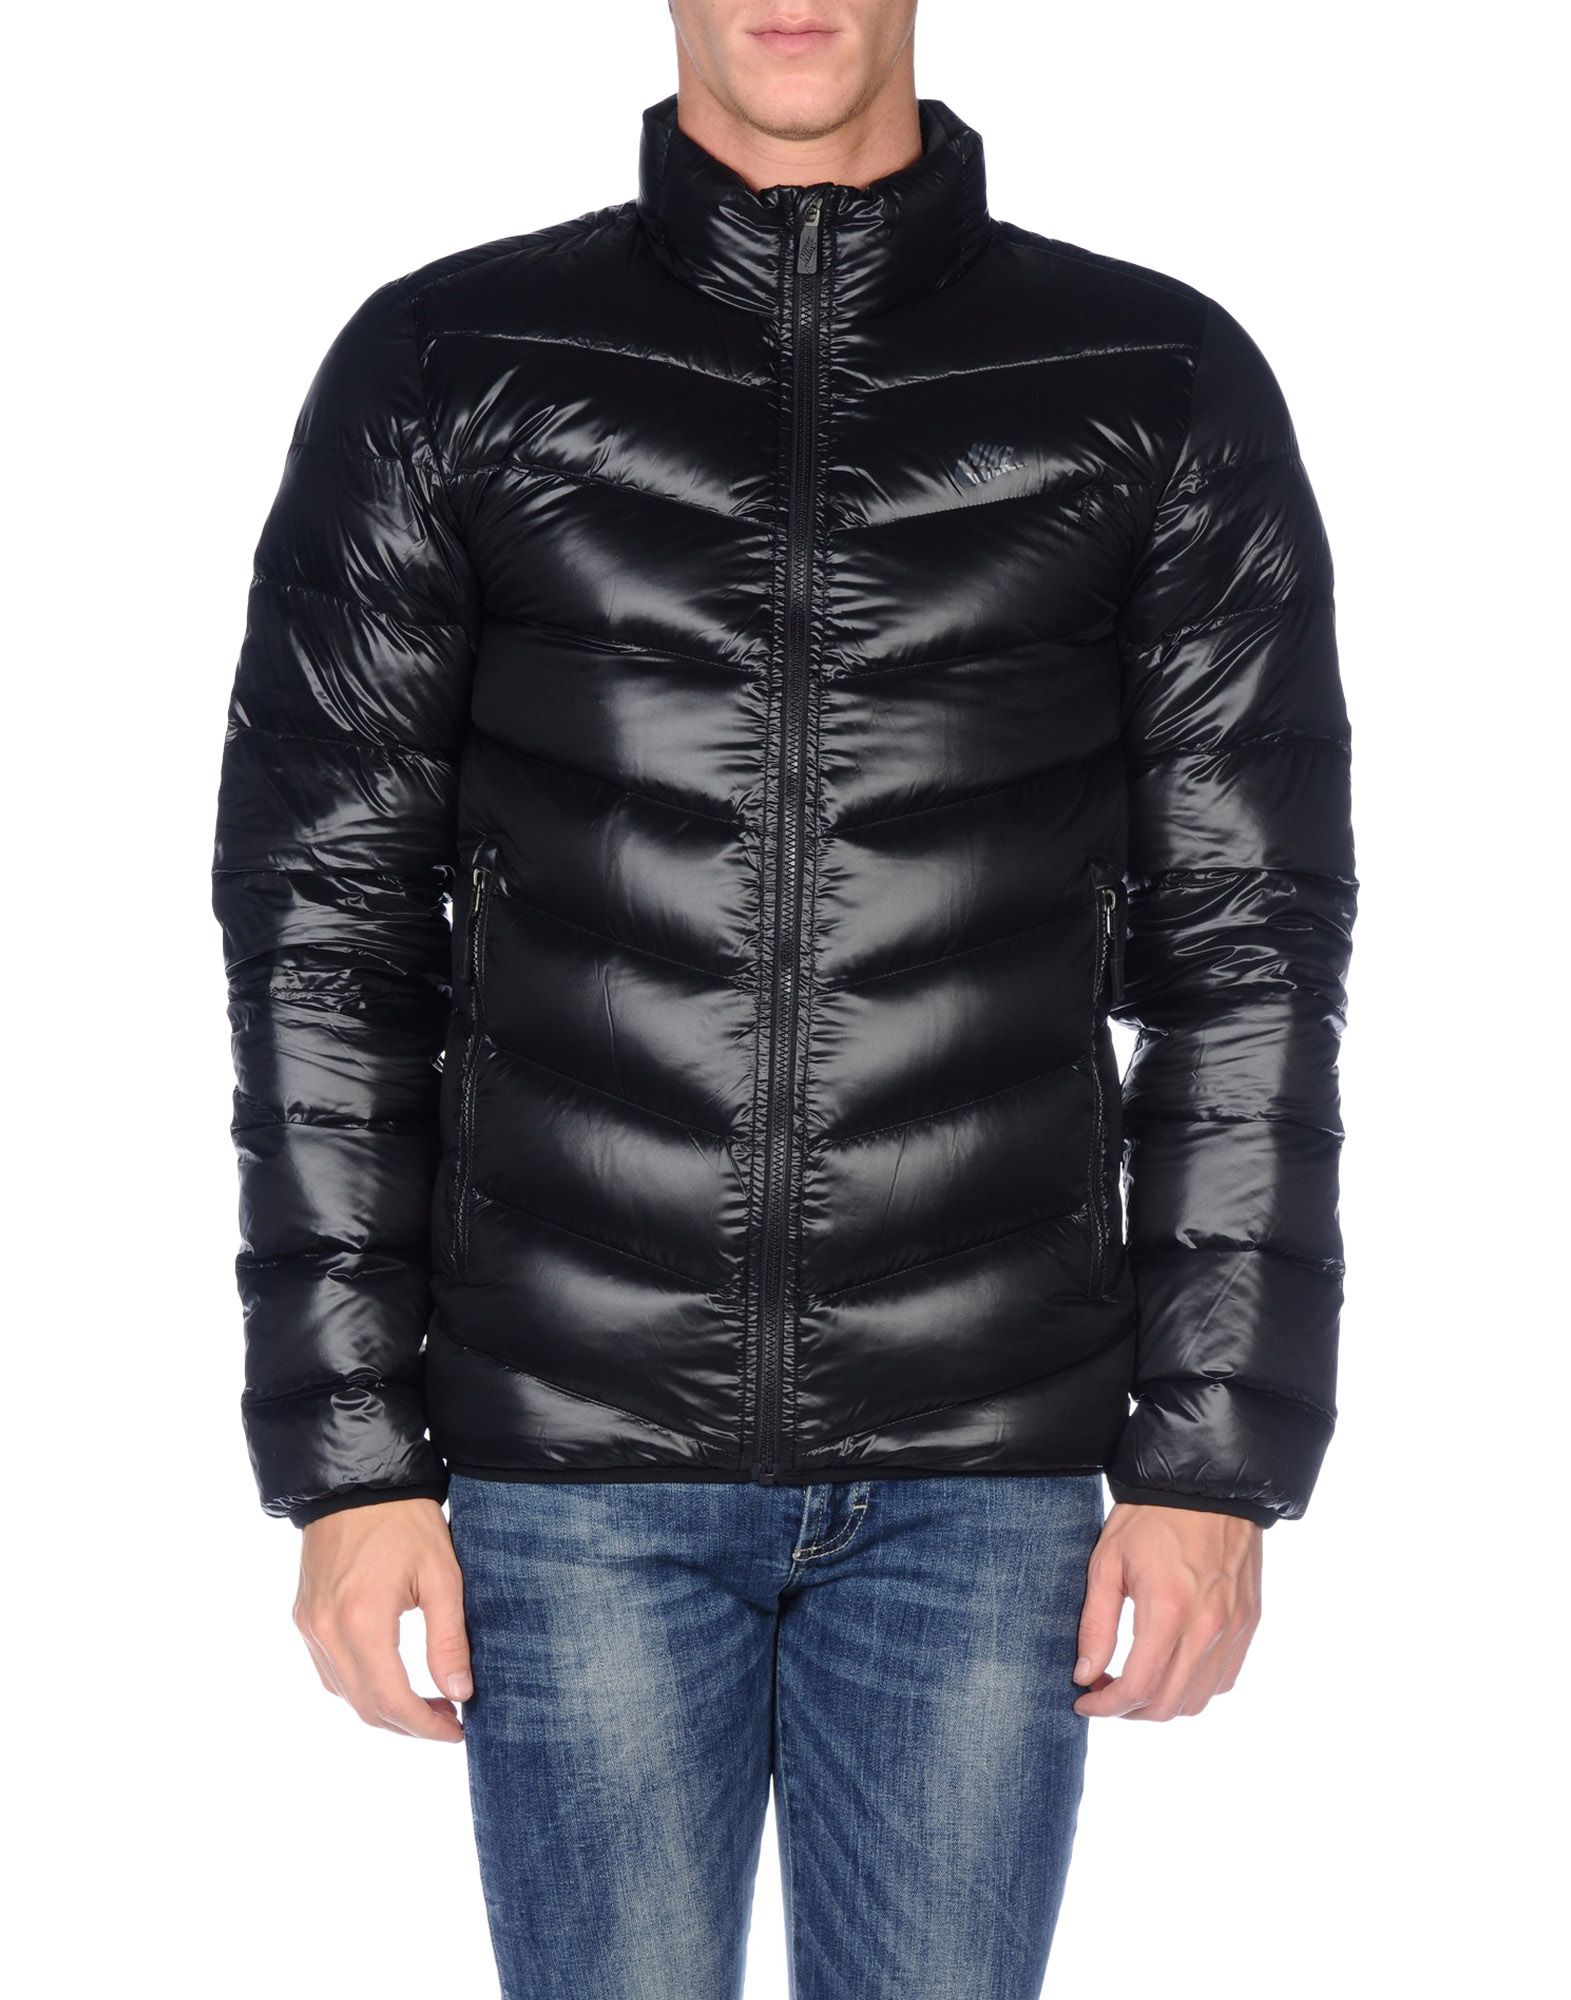 Nike Down Jacket in Black for Men